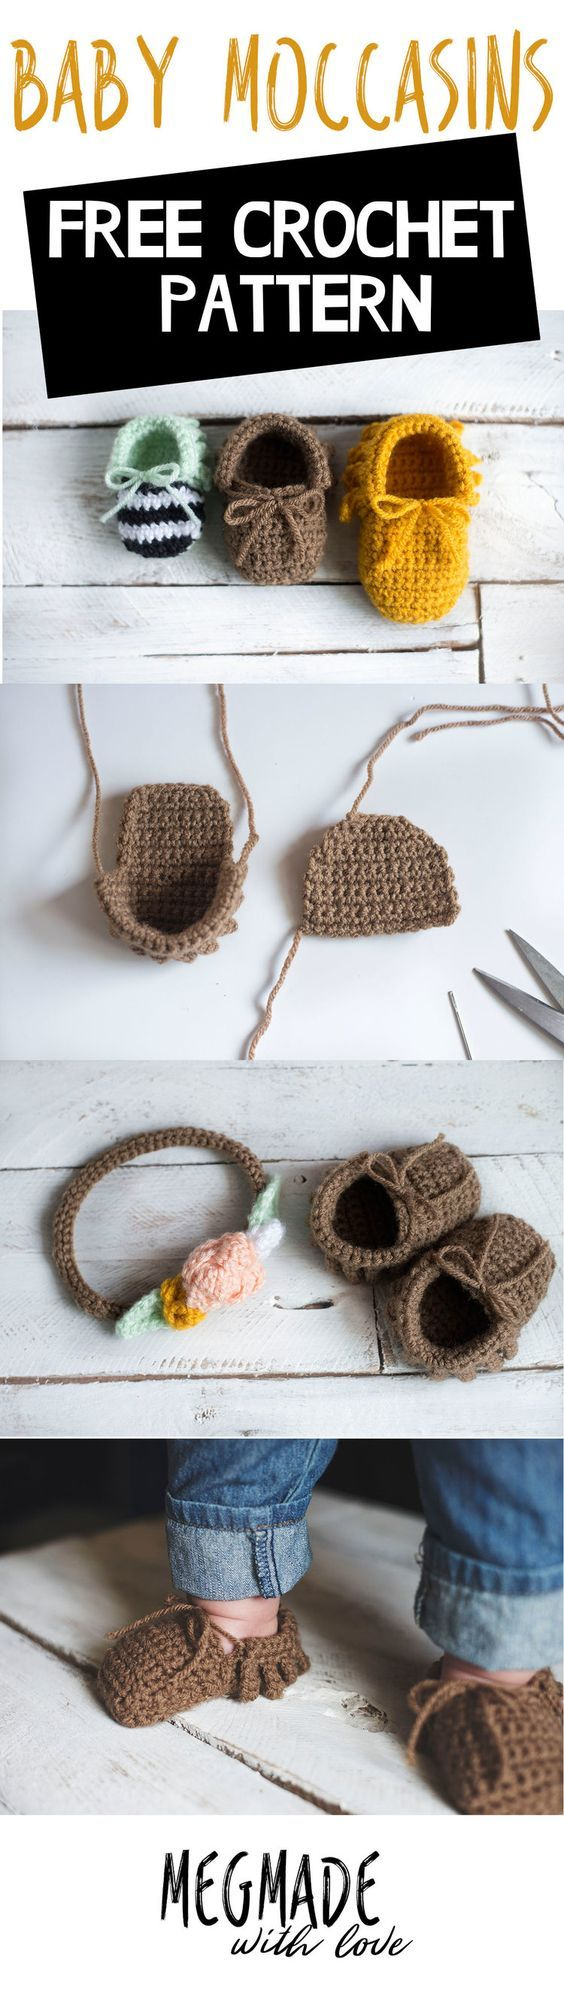 My Hobby Is Crochet: Crochet Baby Moccasins Pattern | tejidos ...